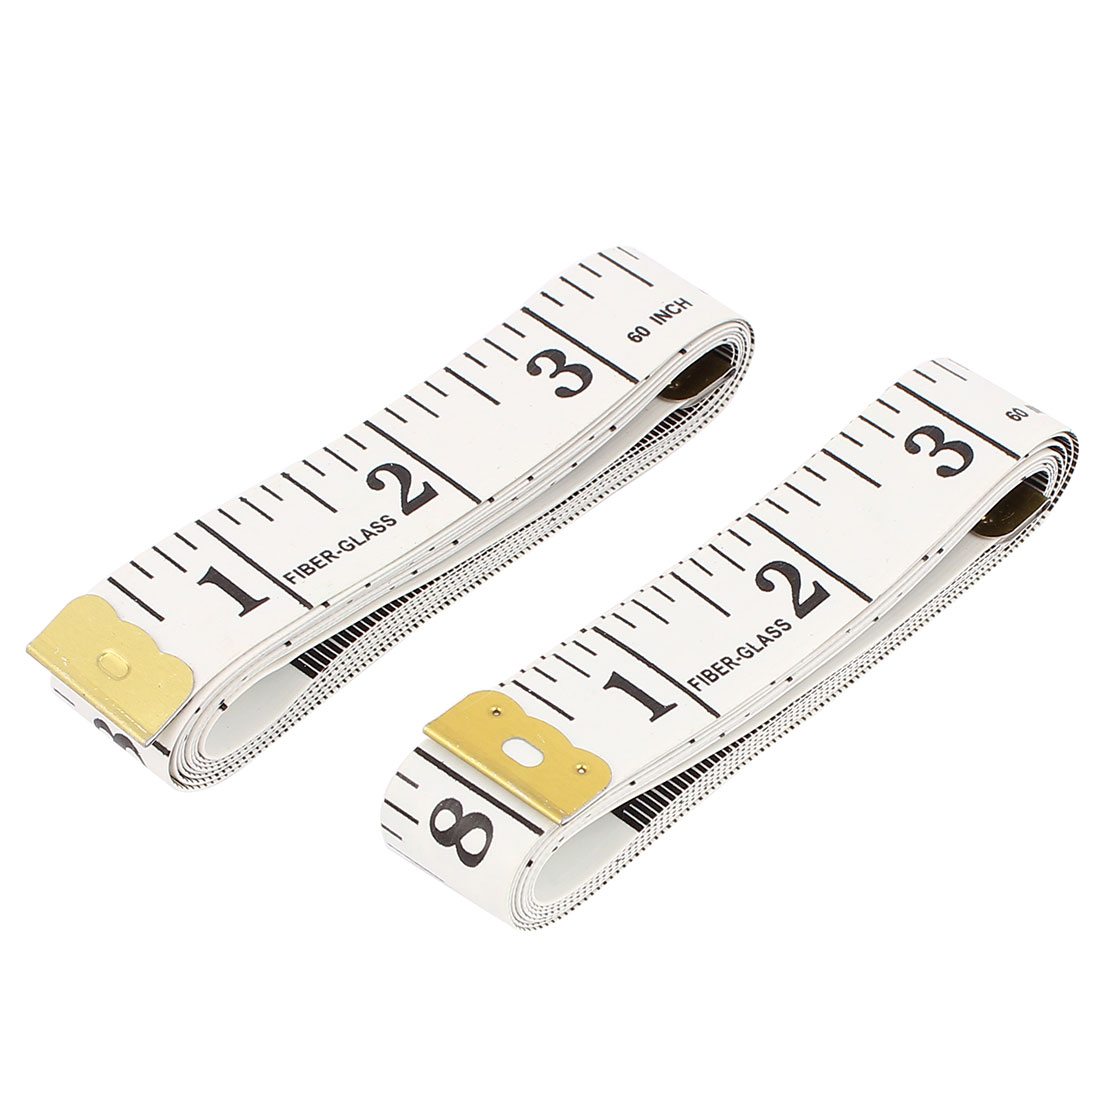 Unique Bargains Body Measuring Tape Tailor Sewing Soft Measure Ruler 1.5M 60 Inch 2 Pcs White